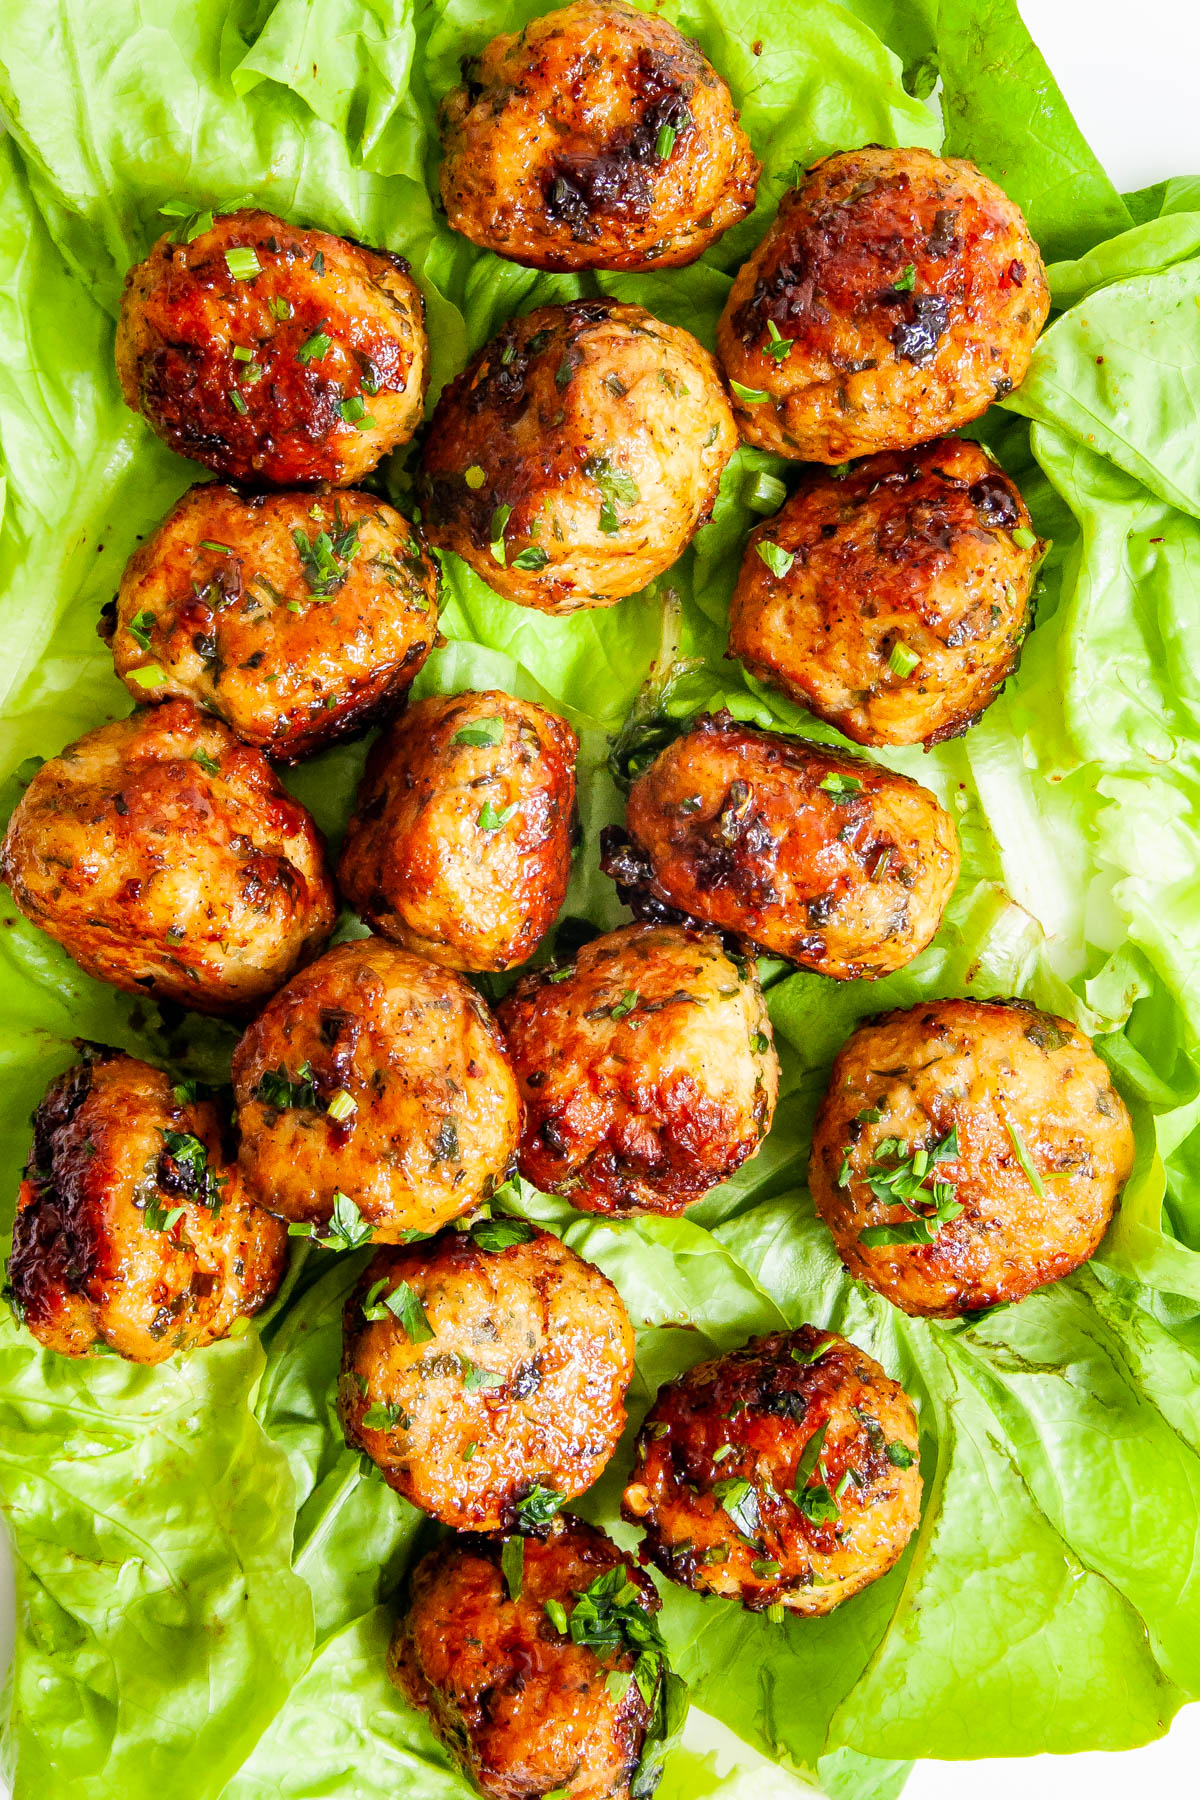 Firecracker Chicken Meatballs over lettuce leaves